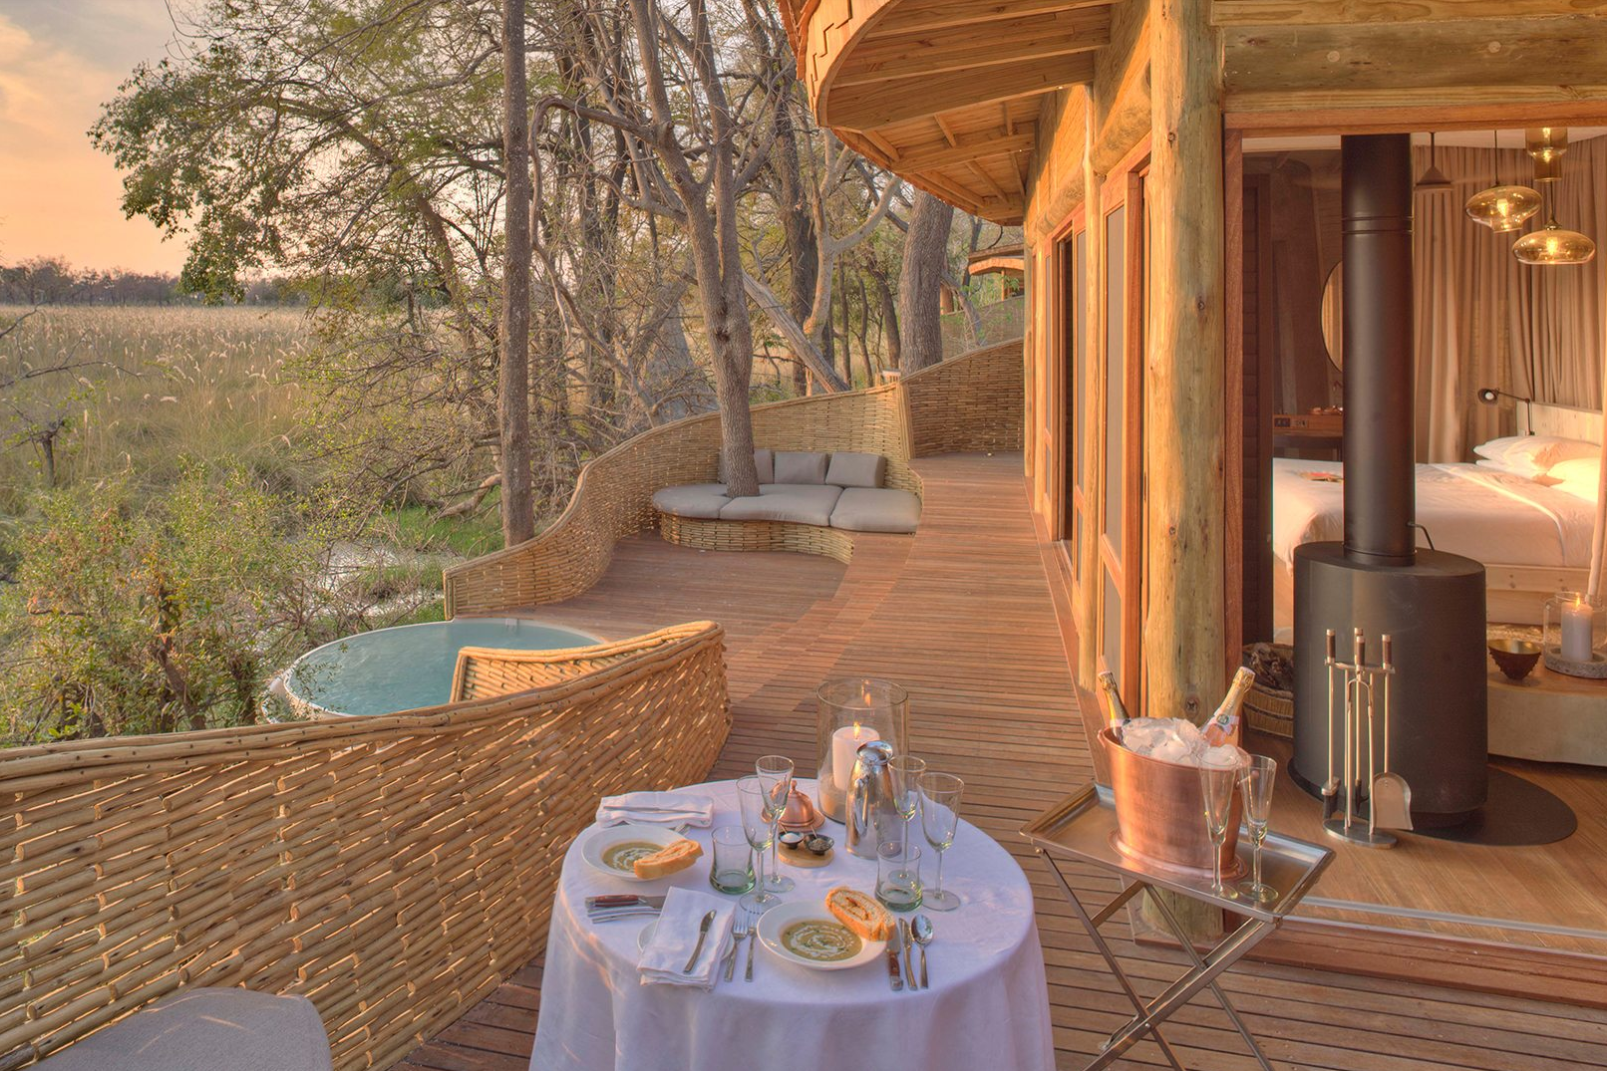 Tented suites at this luxury safari lodge feature wood-burning fireplaces to ward off evening chill.